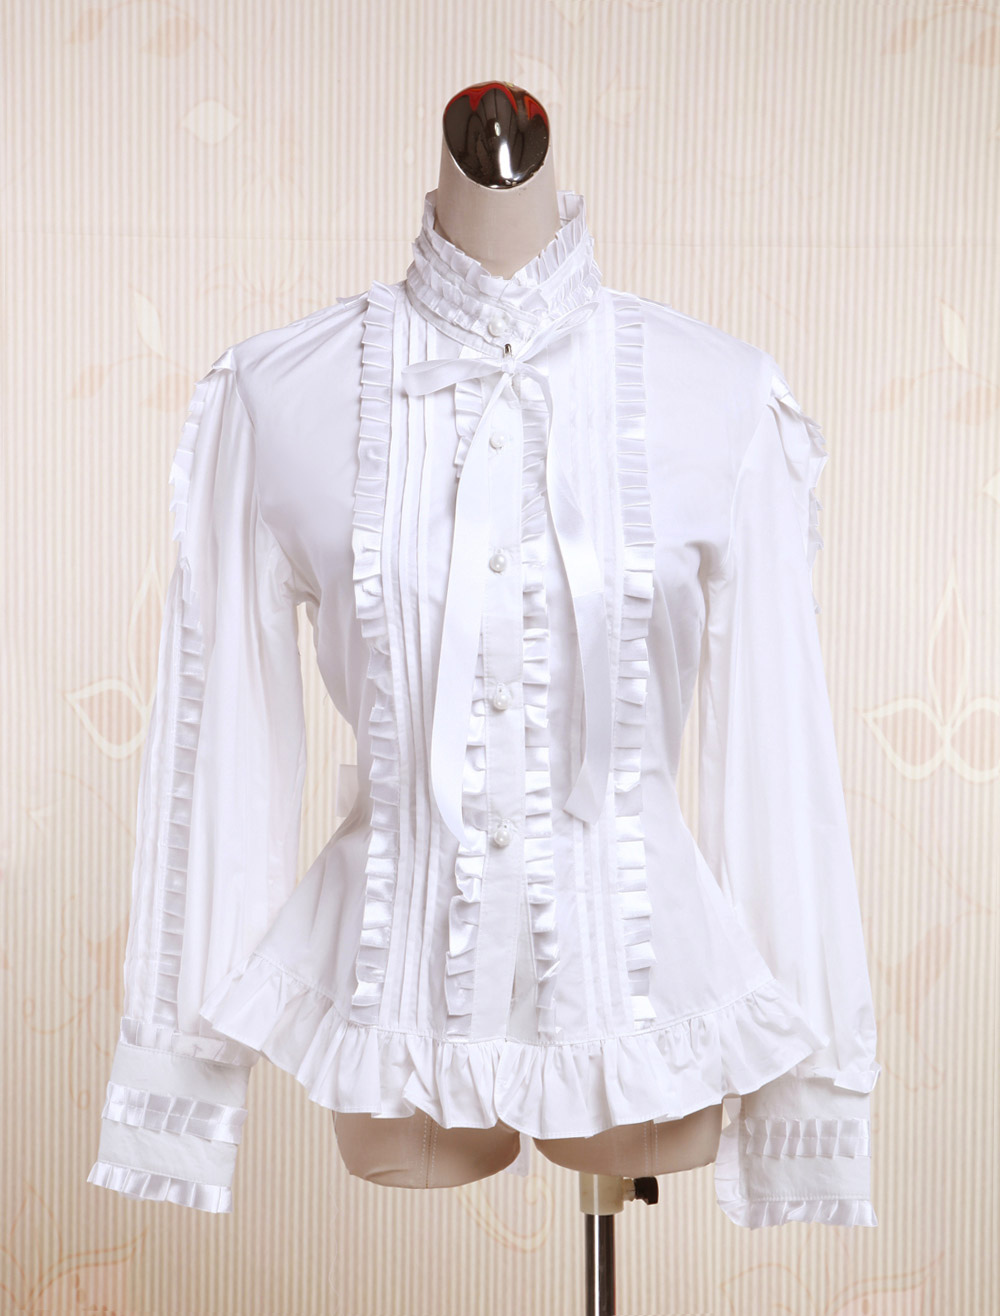 Buy White Cotton Lolita Blouse Long Sleeves Stand Colalr Lace Bow Layered Ruffles for $41.39 in Milanoo store